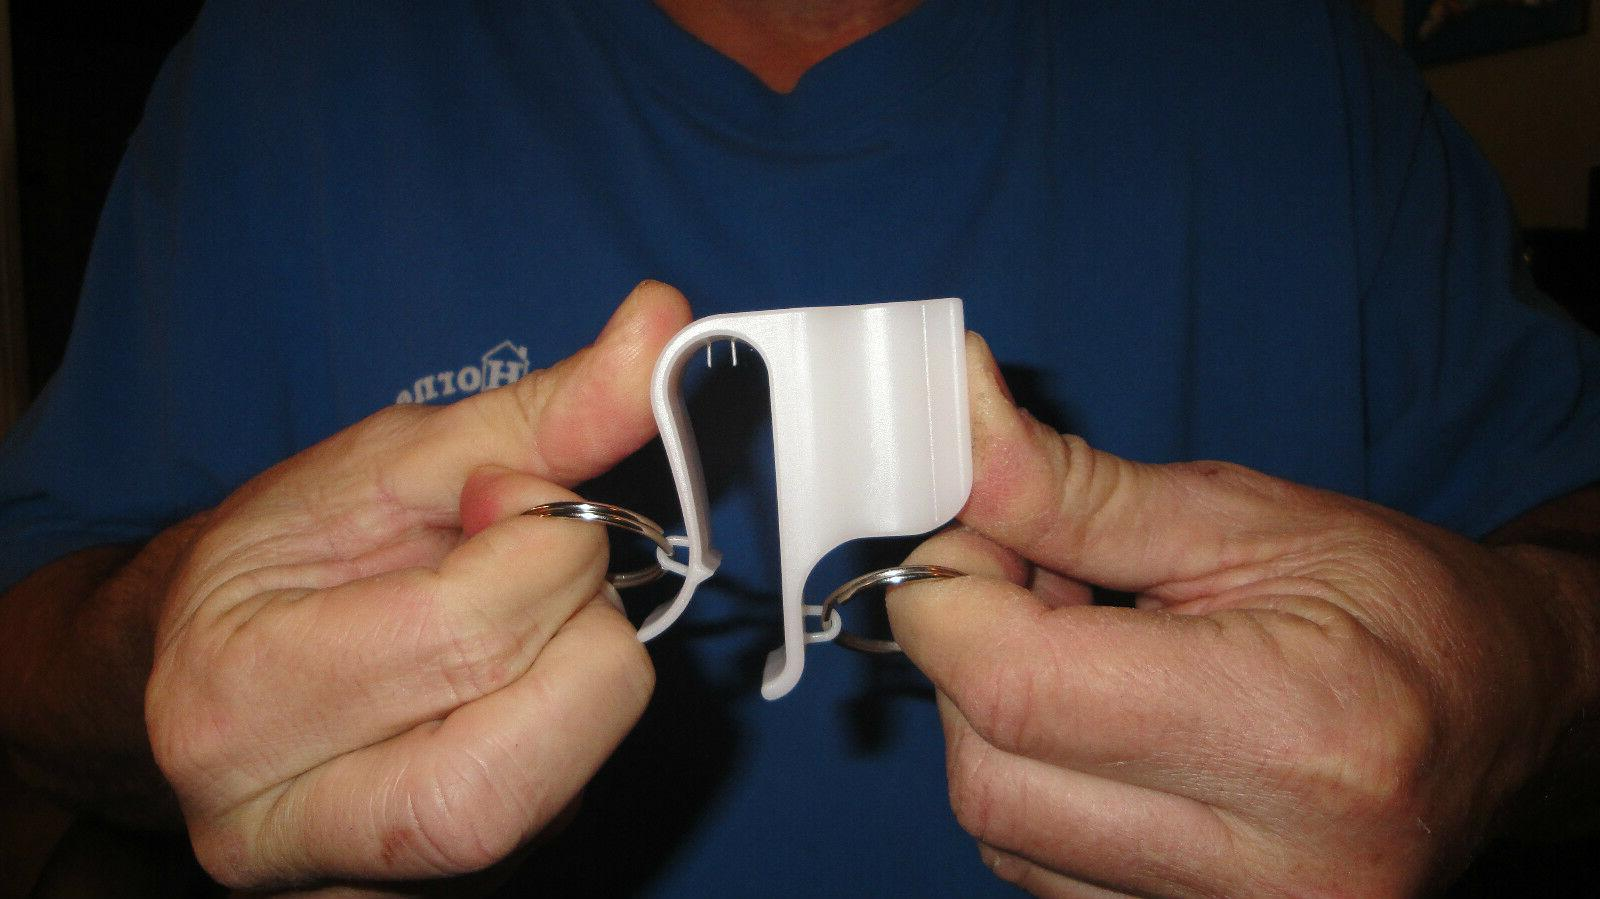 The Mighty Putter Clip Holder for golf bag